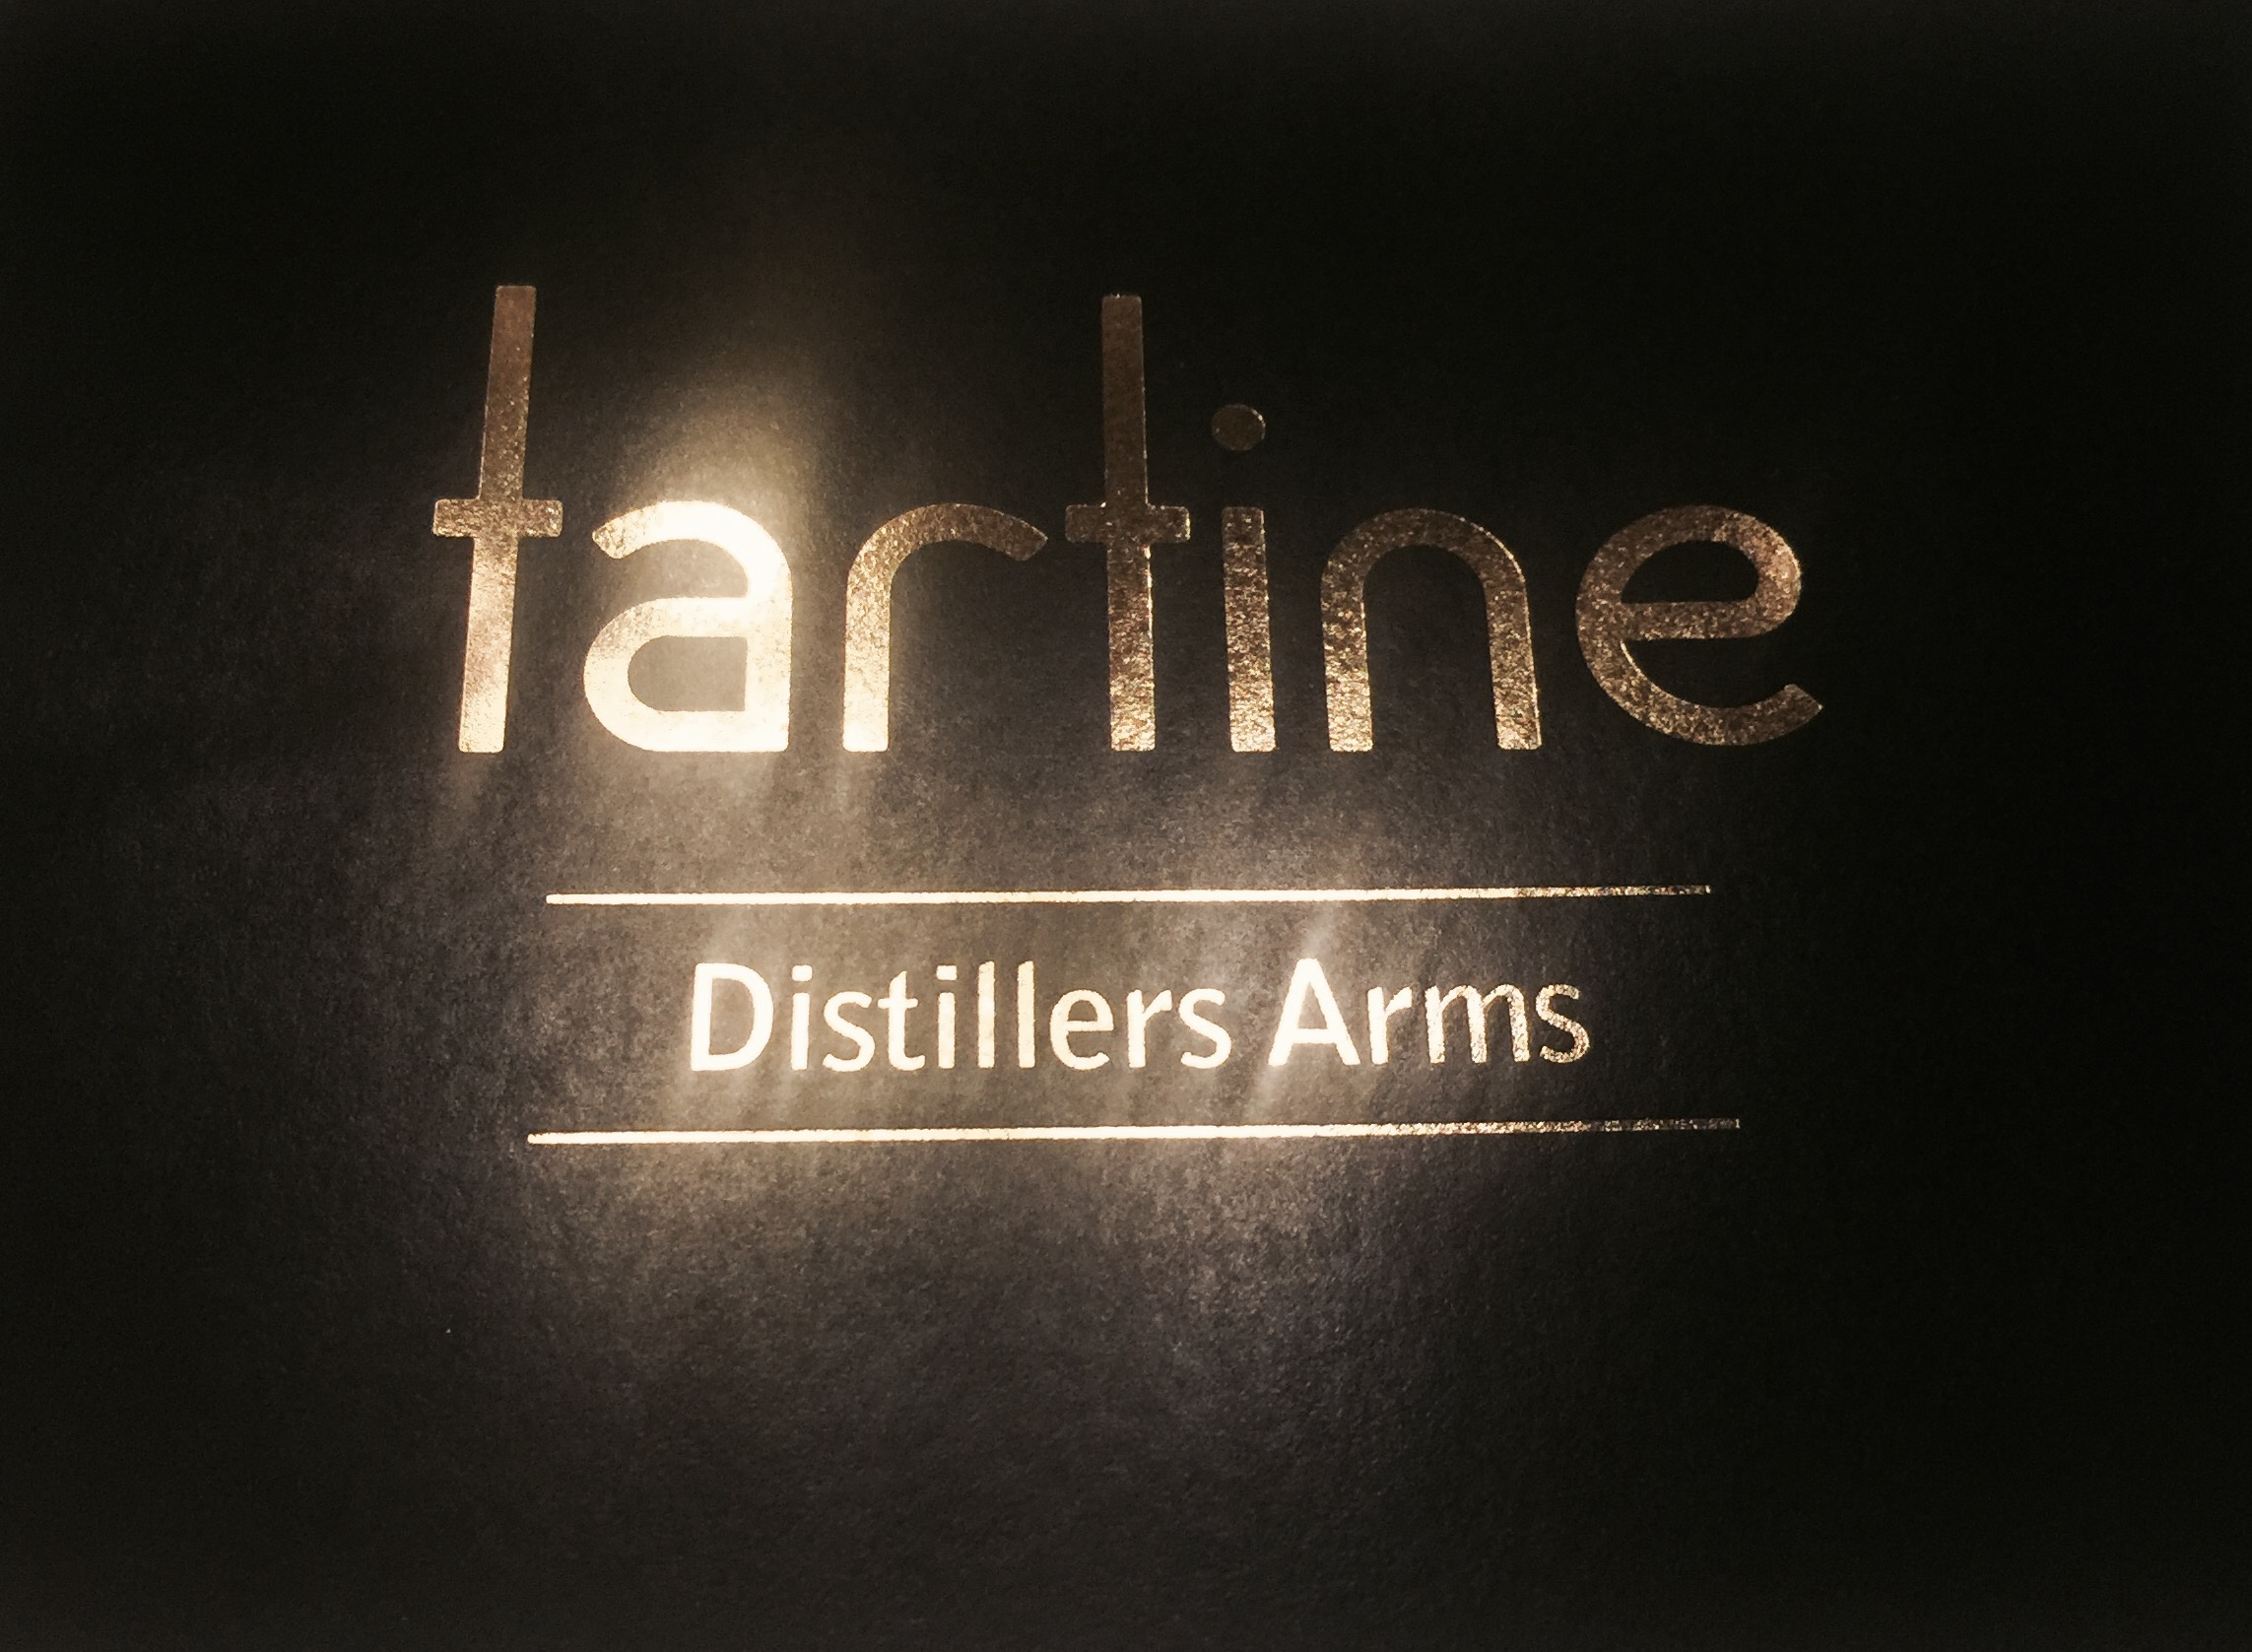 Request a Tartine Gift Voucher to send to family or friends.